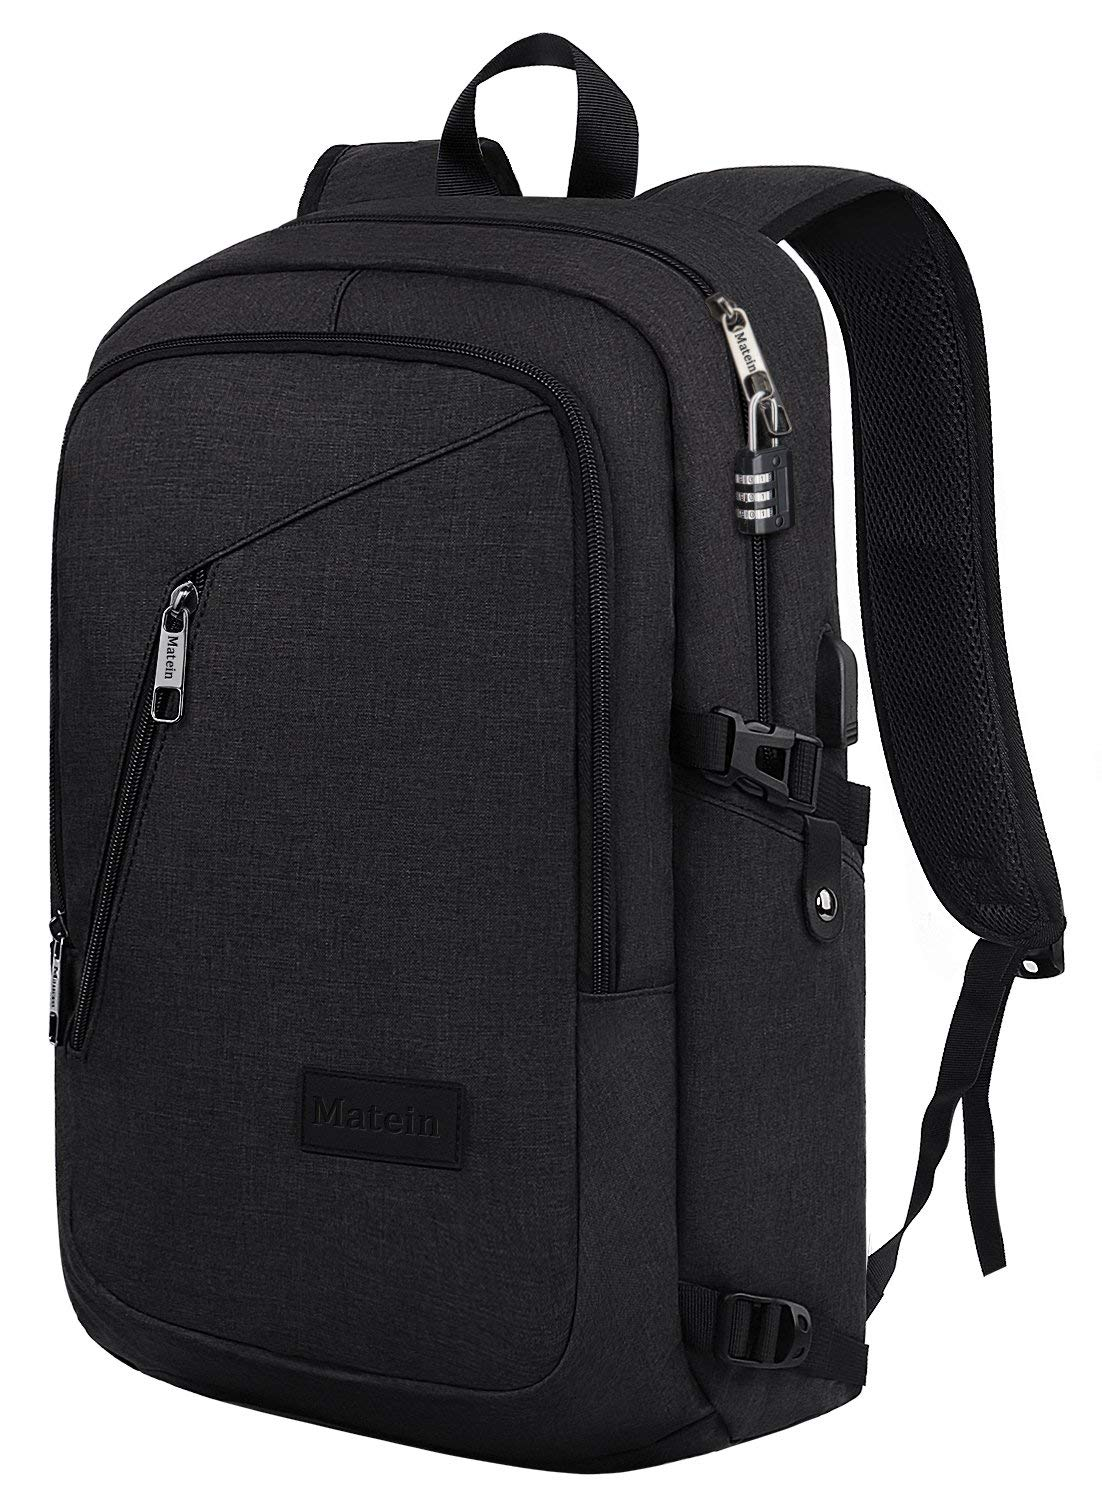 MATEIN Slim Travel Backpack